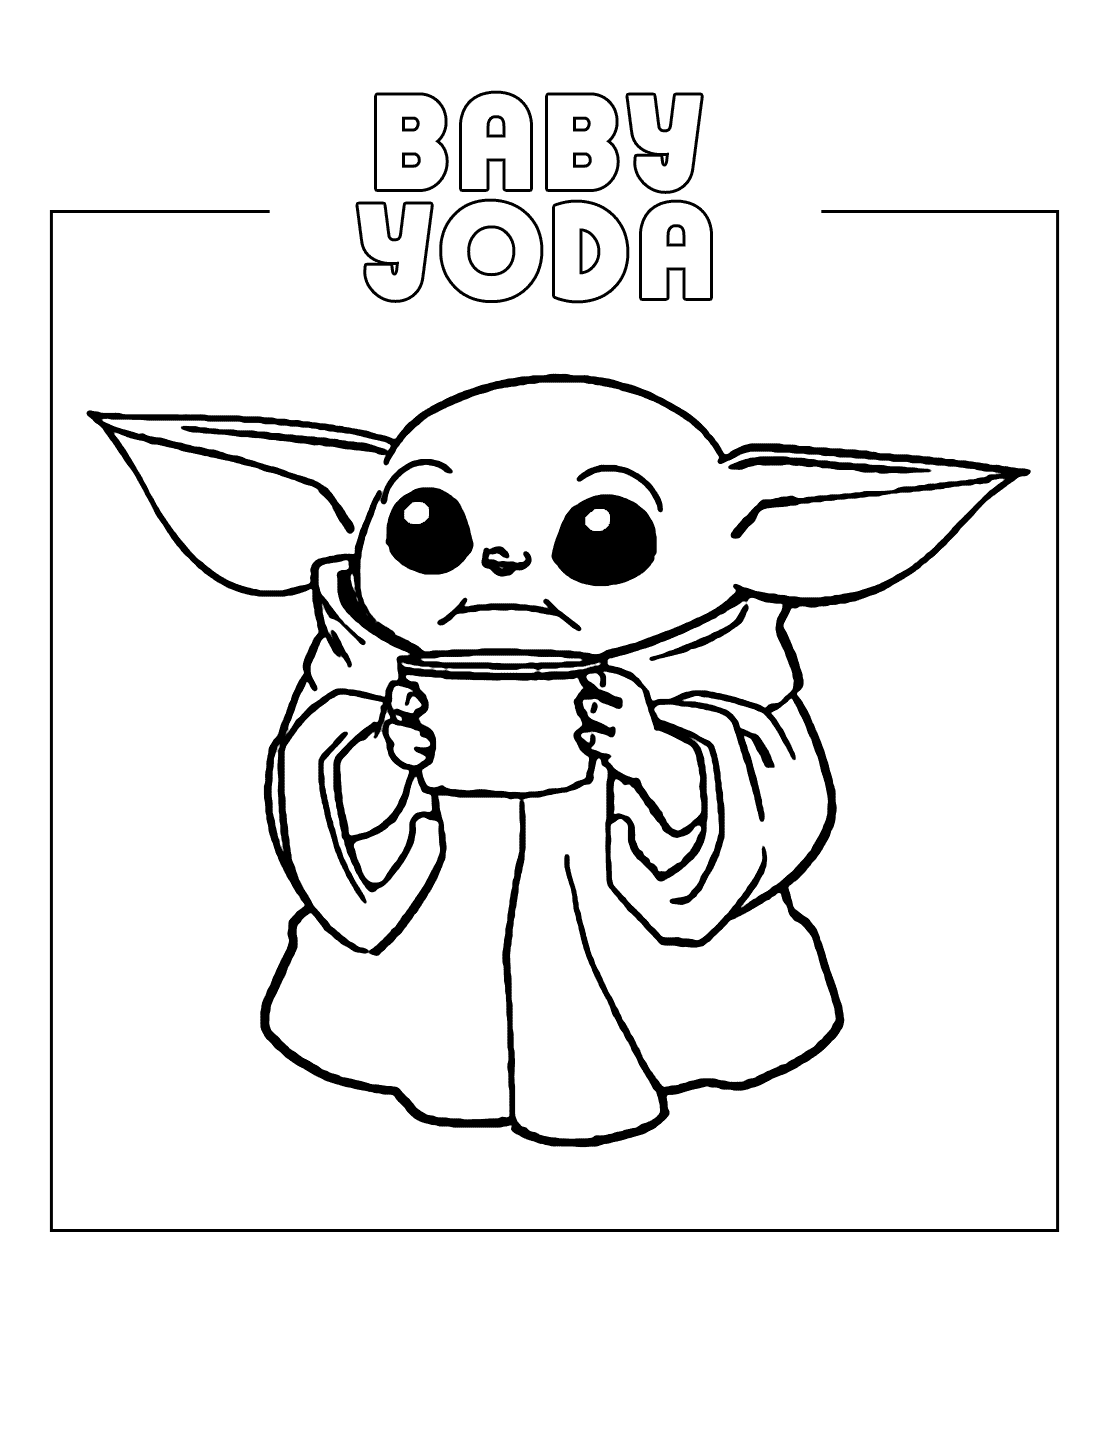 Free Baby Yoda Coloring Pages : coloring, pages, Coloring, Pages, Coloring.rocks!